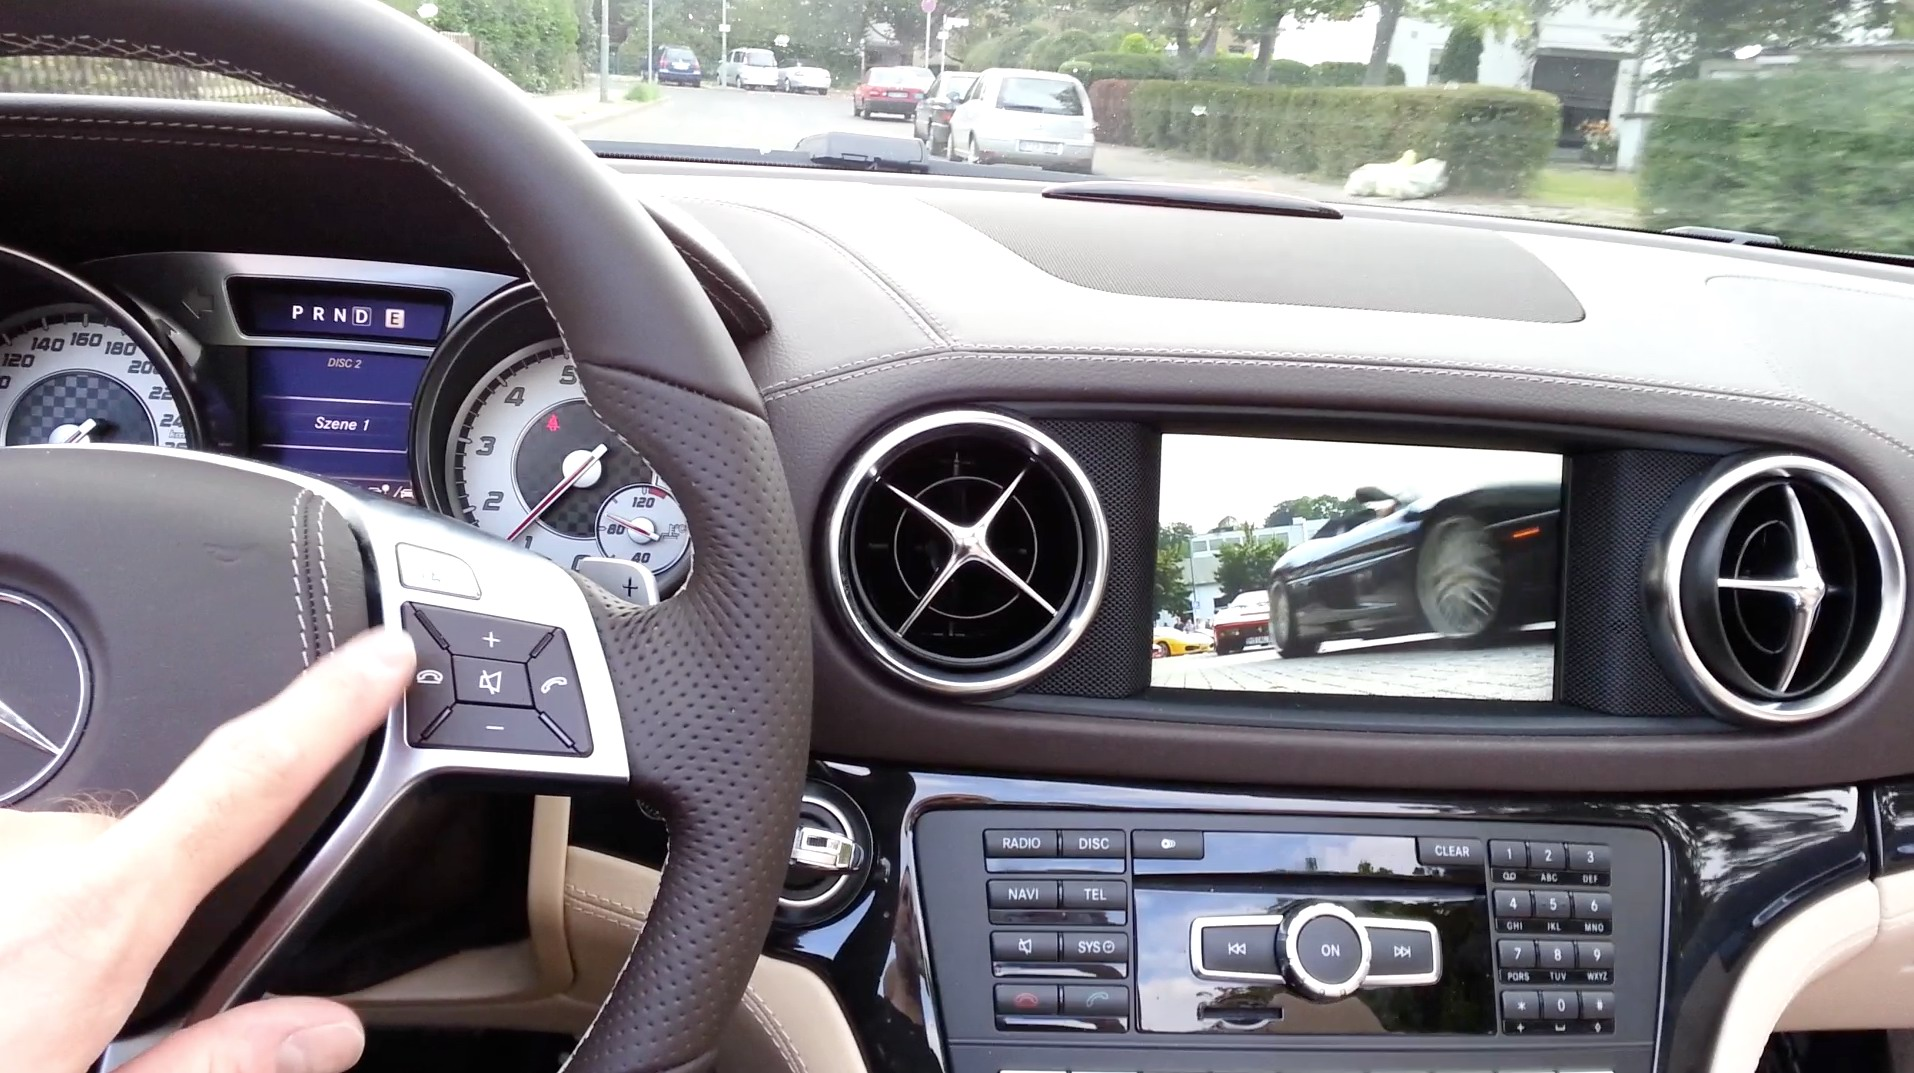 Video-in-motion unlocker SmartTV now available for Mercedes-Benz GLC and GLE